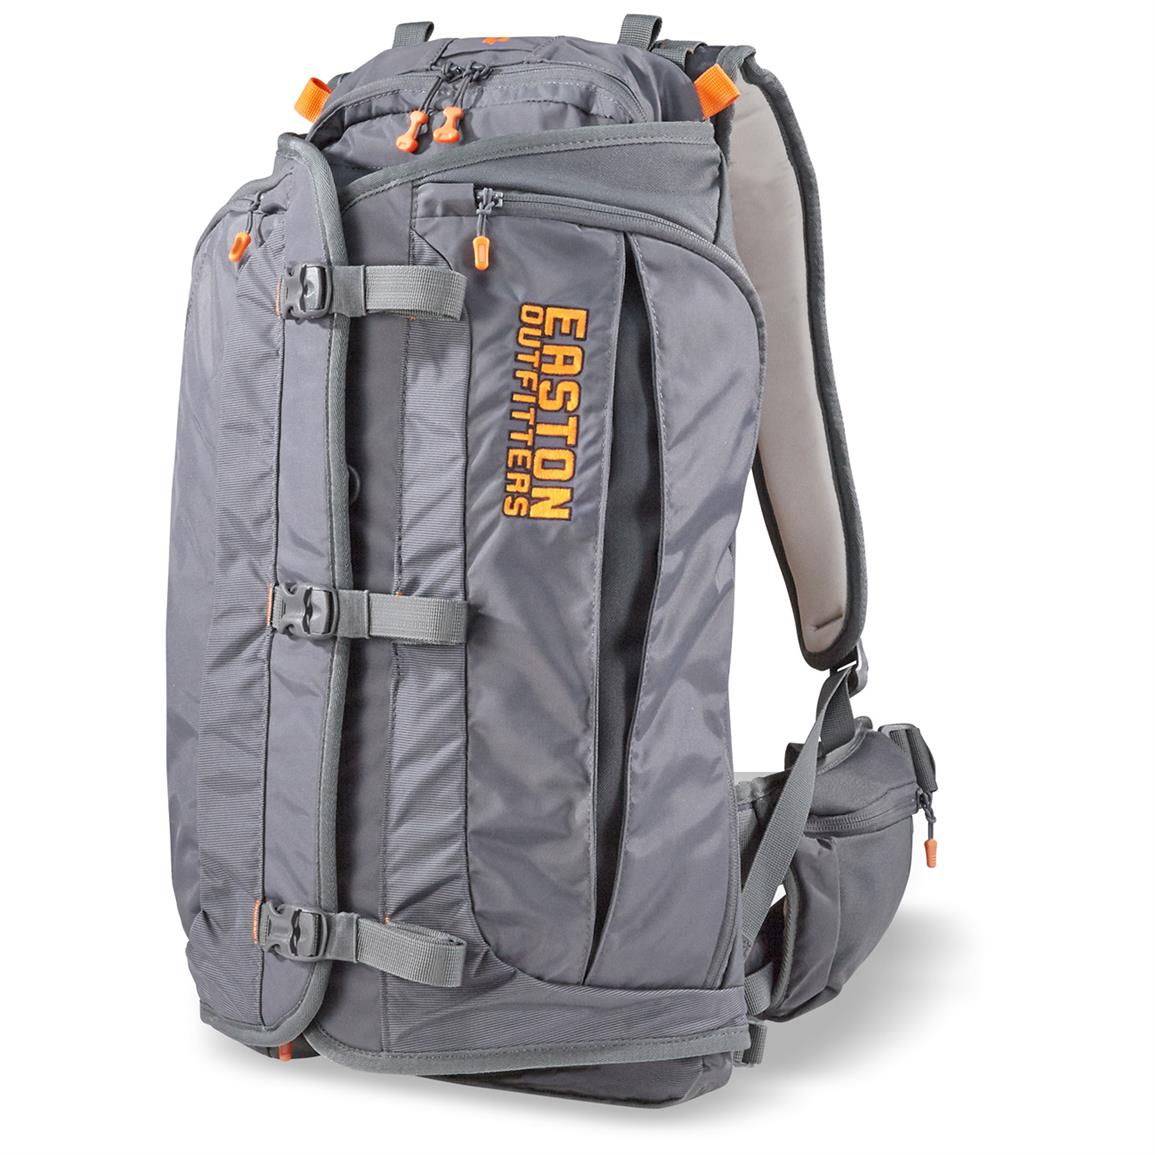 Easton Outfitter Fullbore 3600 Hunting Backpack